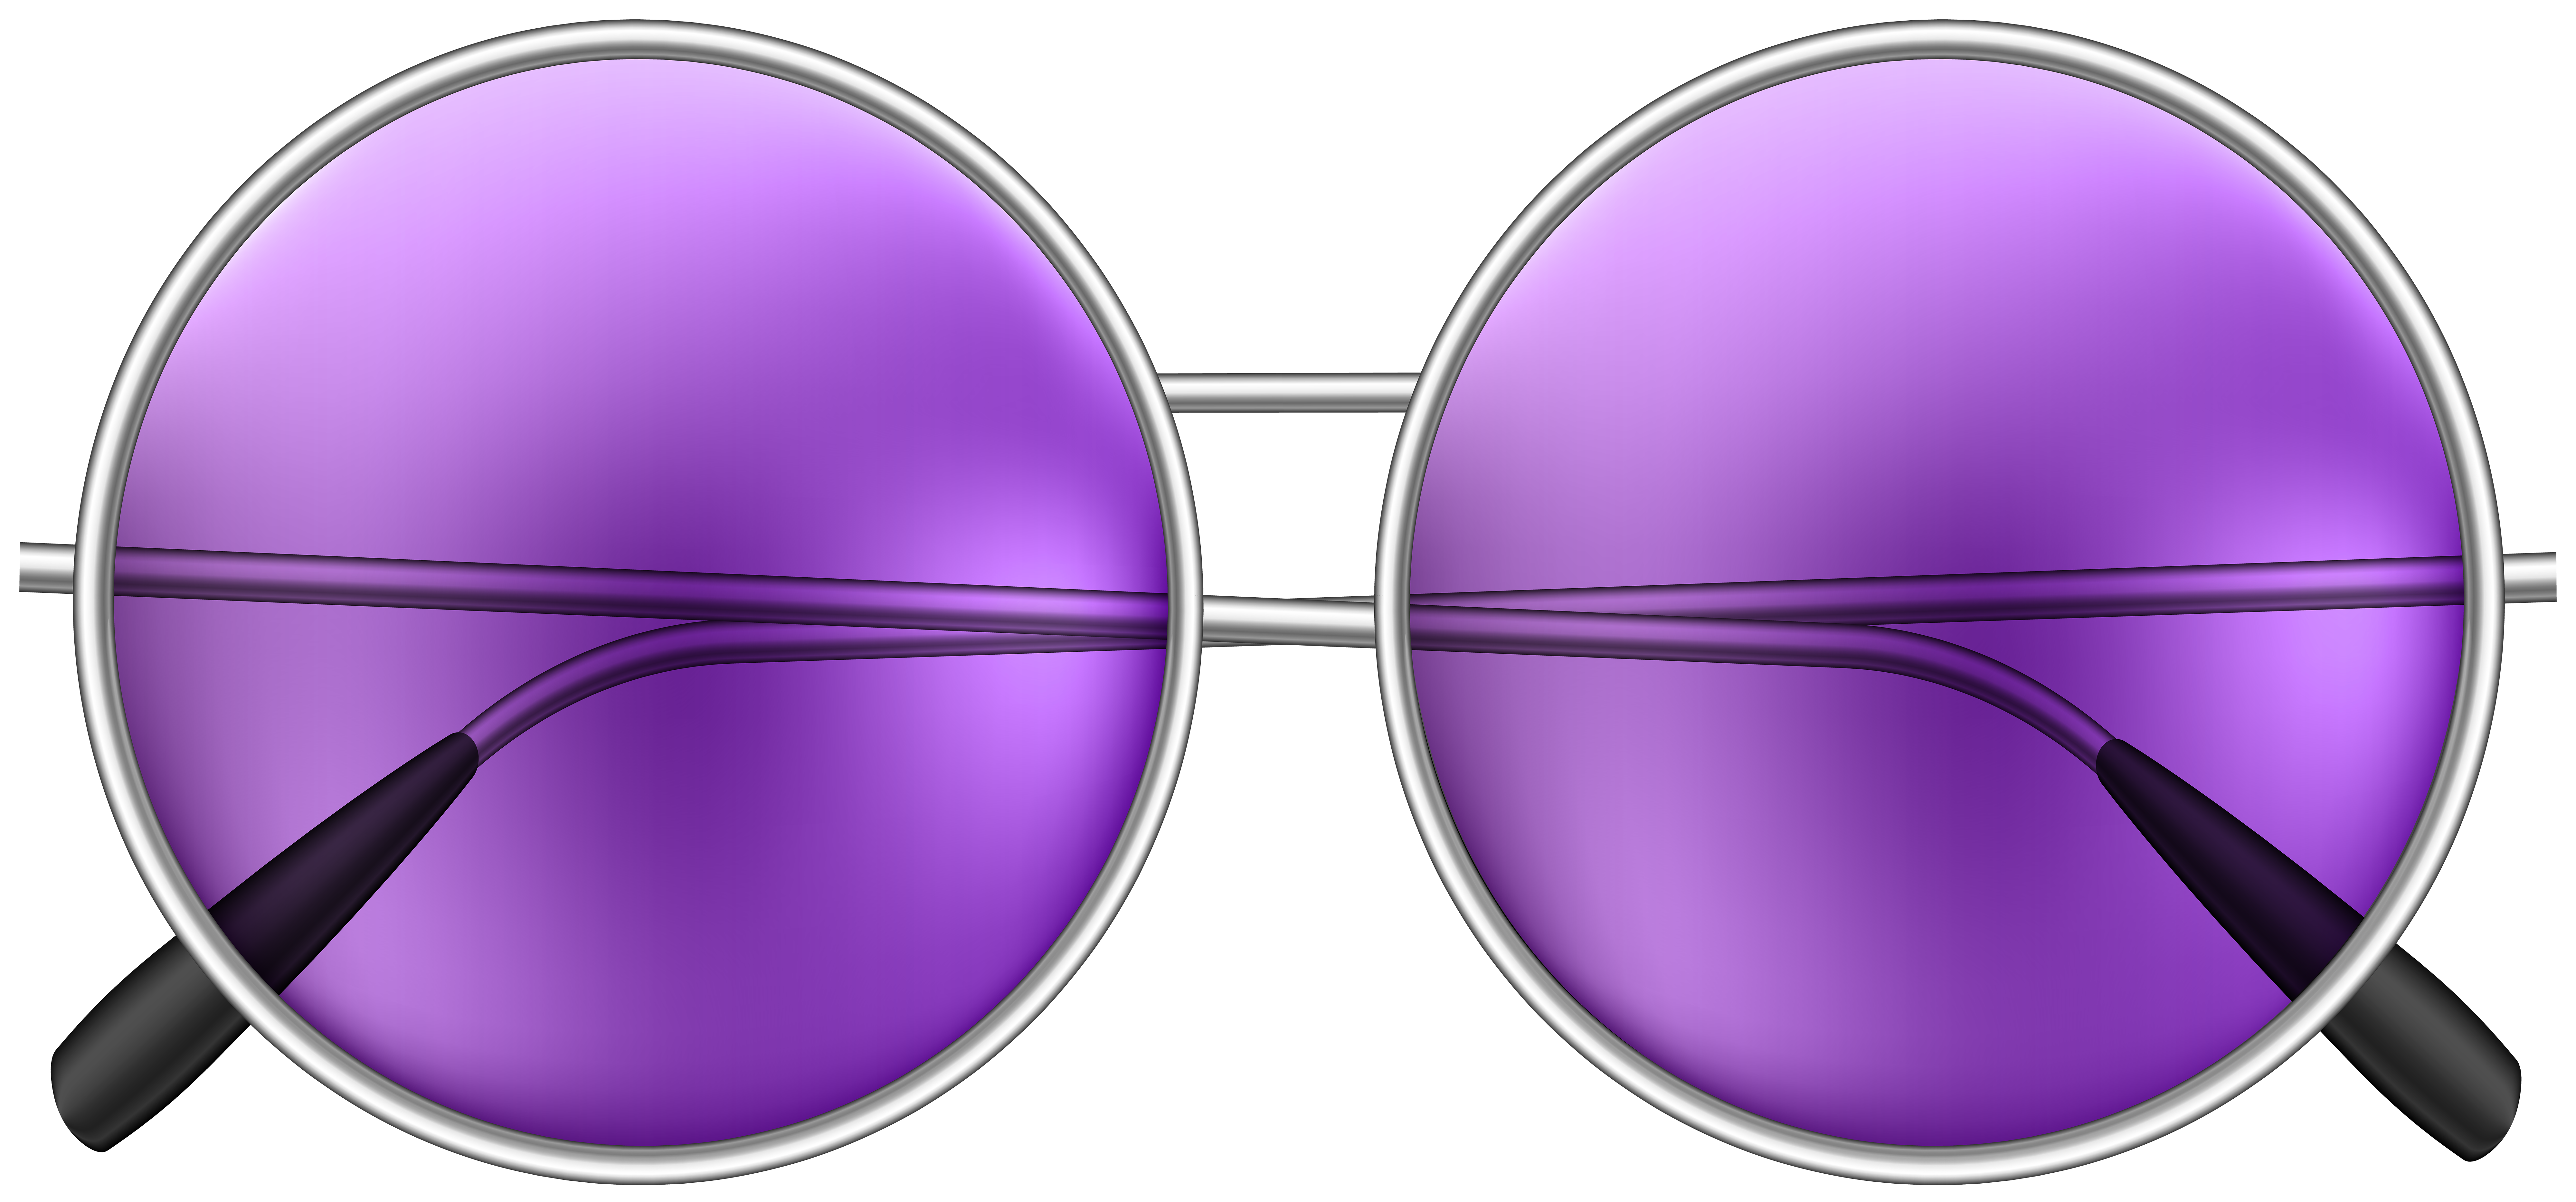 Round goggles clipart clip transparent library Round Sunglasses Purple PNG Clip Art Image | Gallery ... clip transparent library